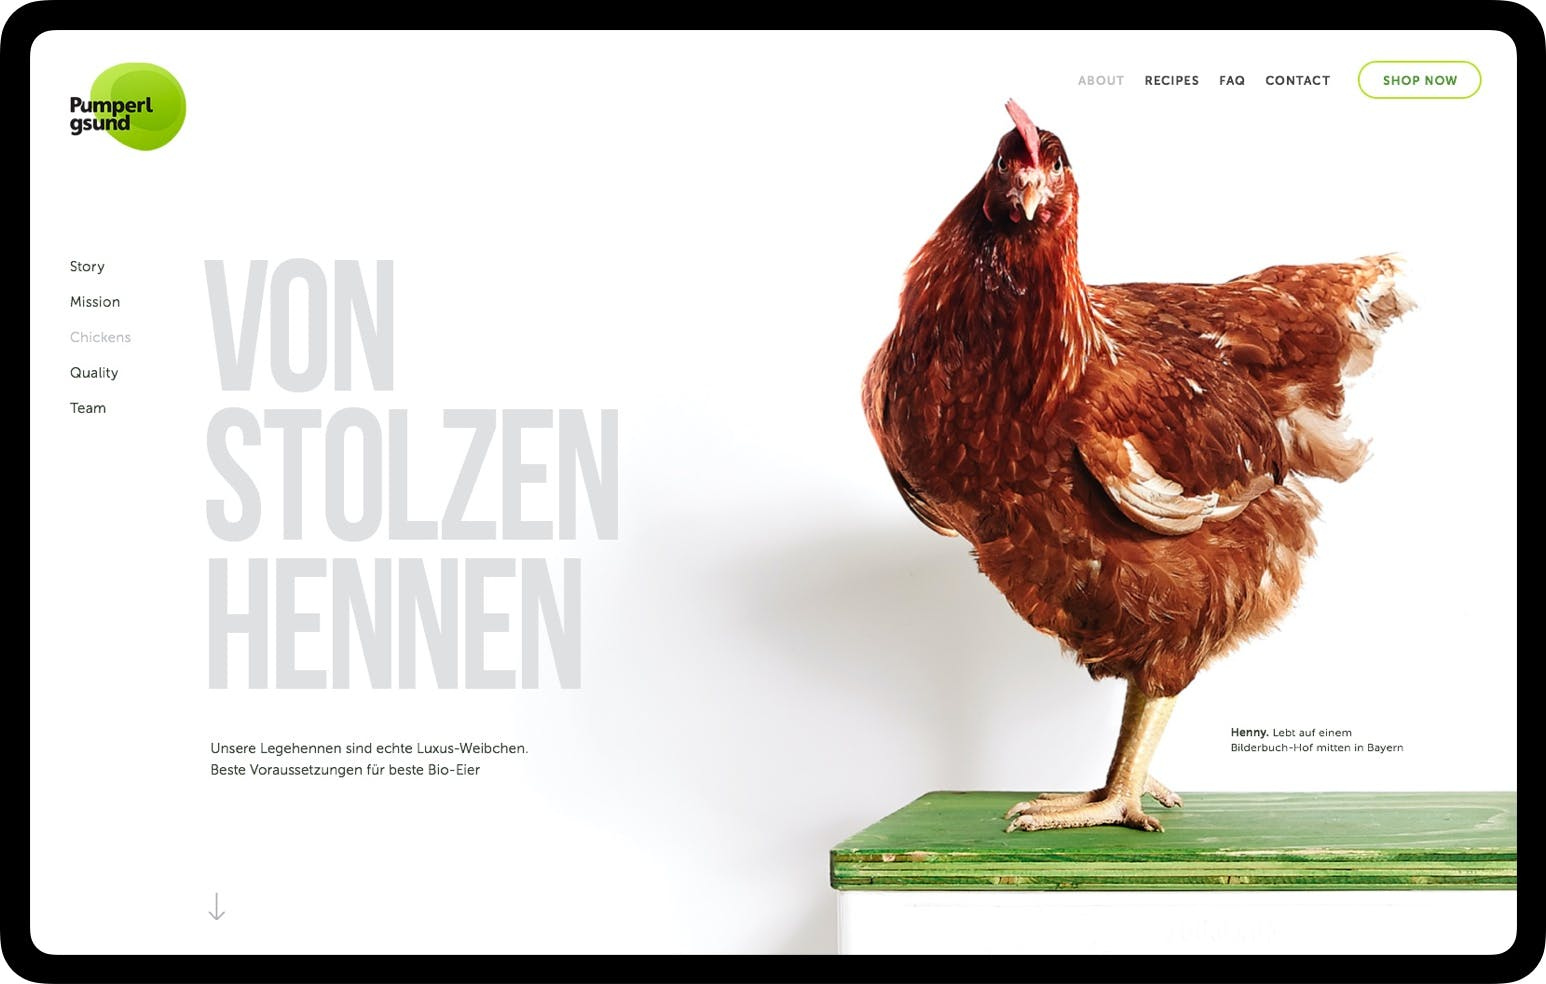 Digital user interface showing Pumperlgsund homepage with photo of big hen next to slogan 'von stolzen Hennen'